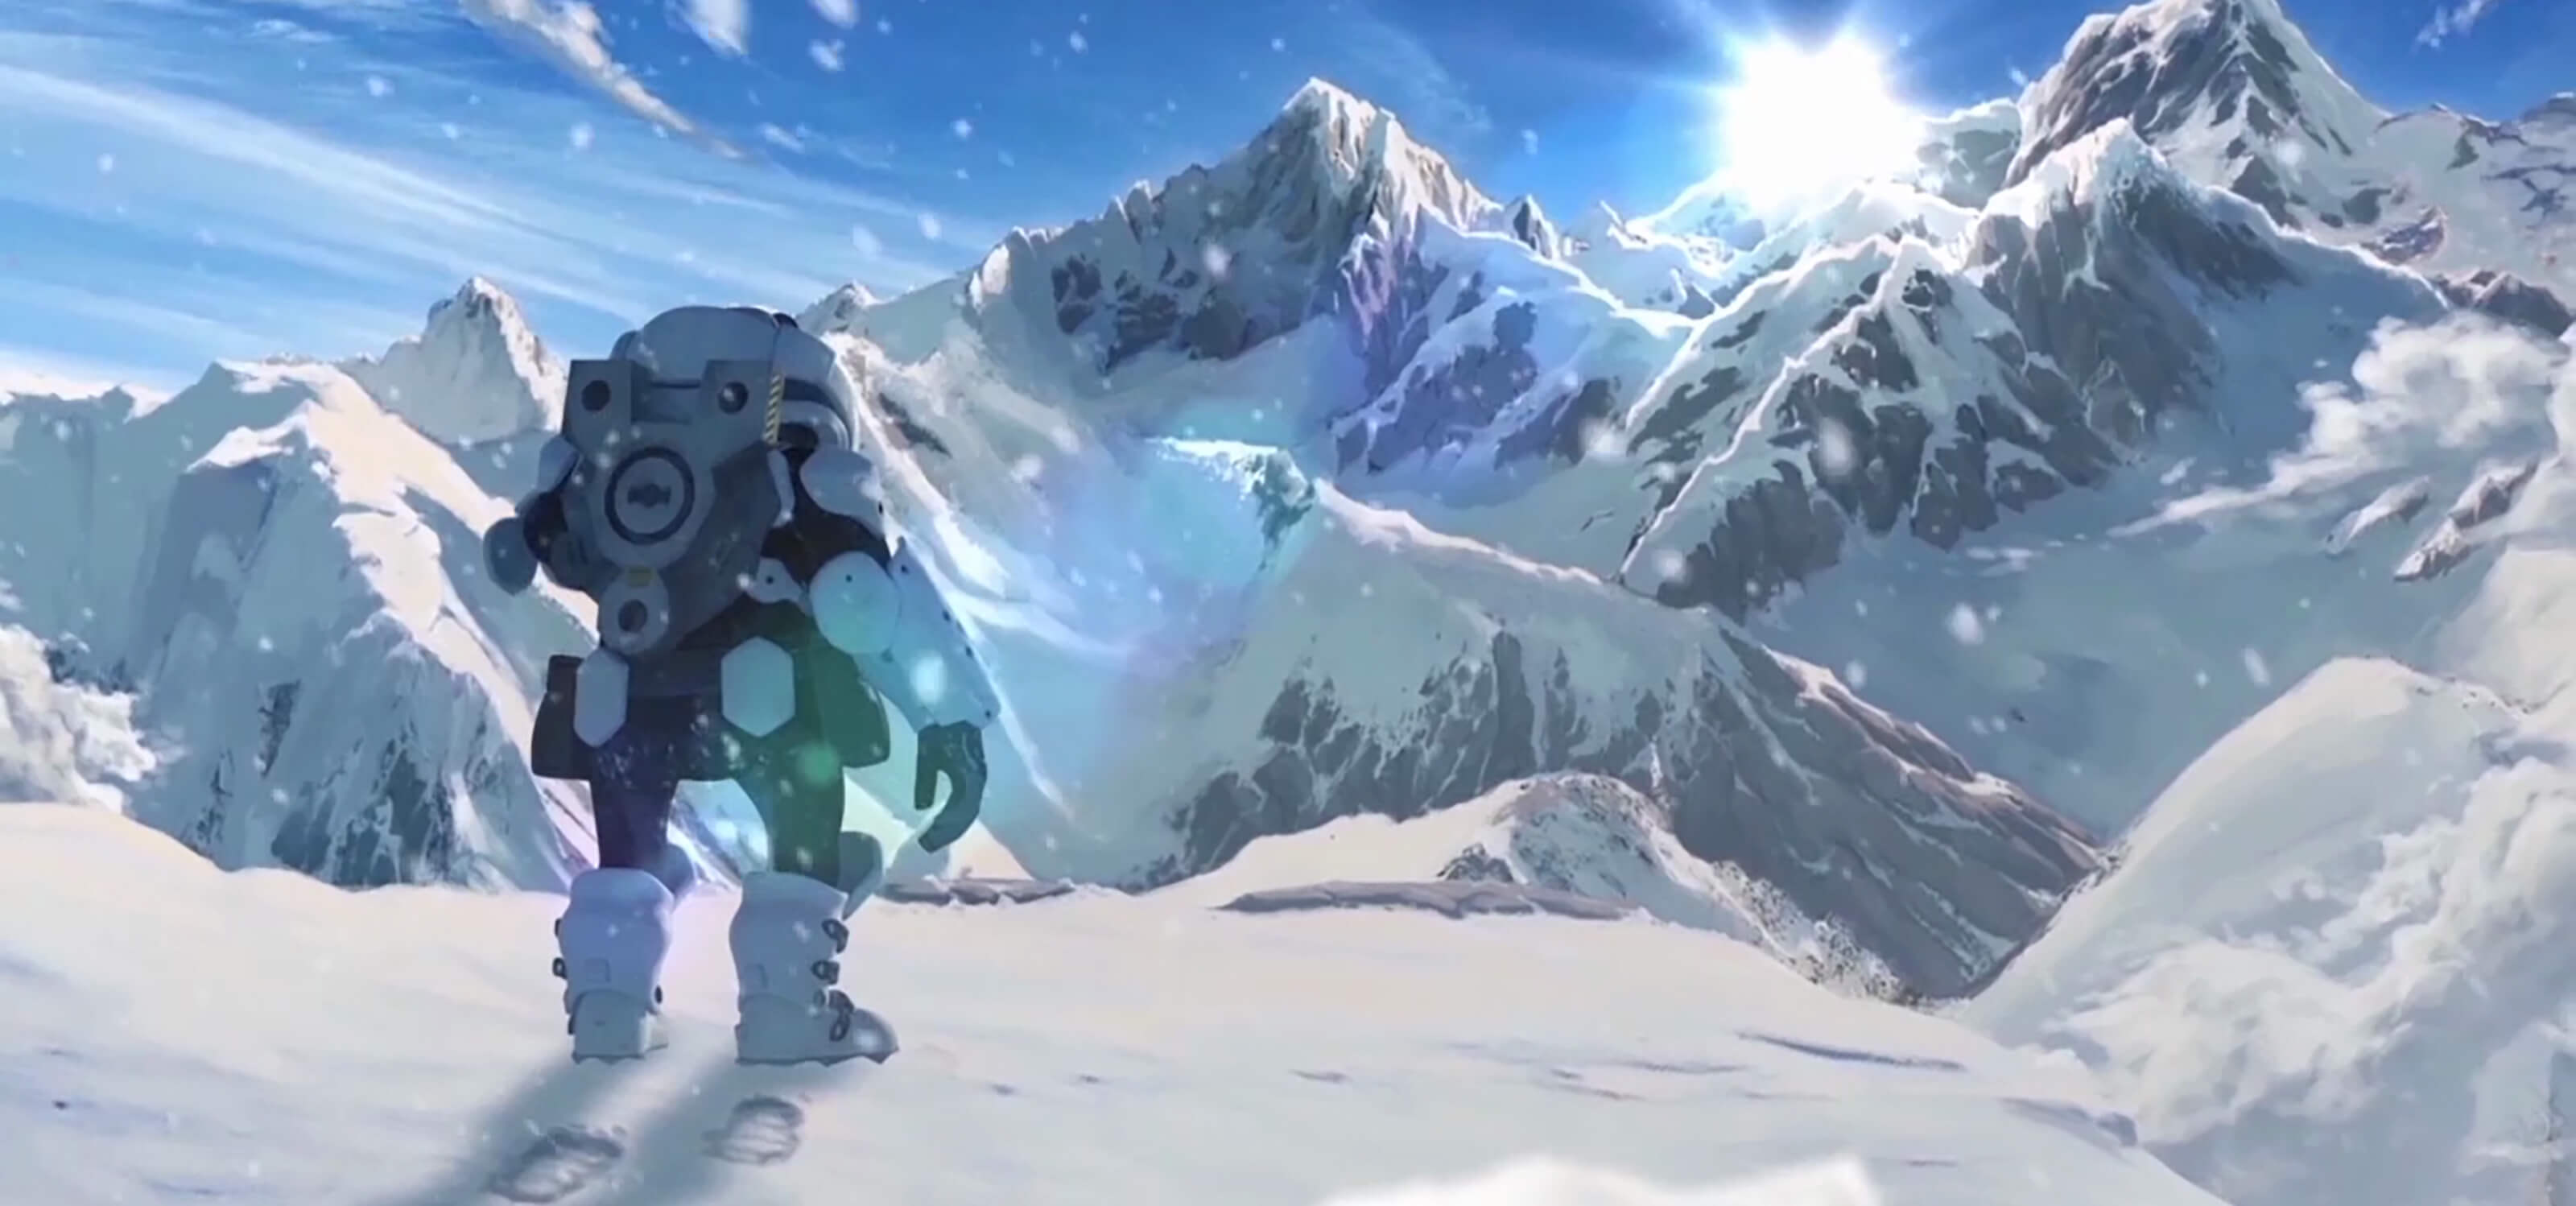 Screenshot from student film Level 1457 LAST of the main character gazing at snowy mountains